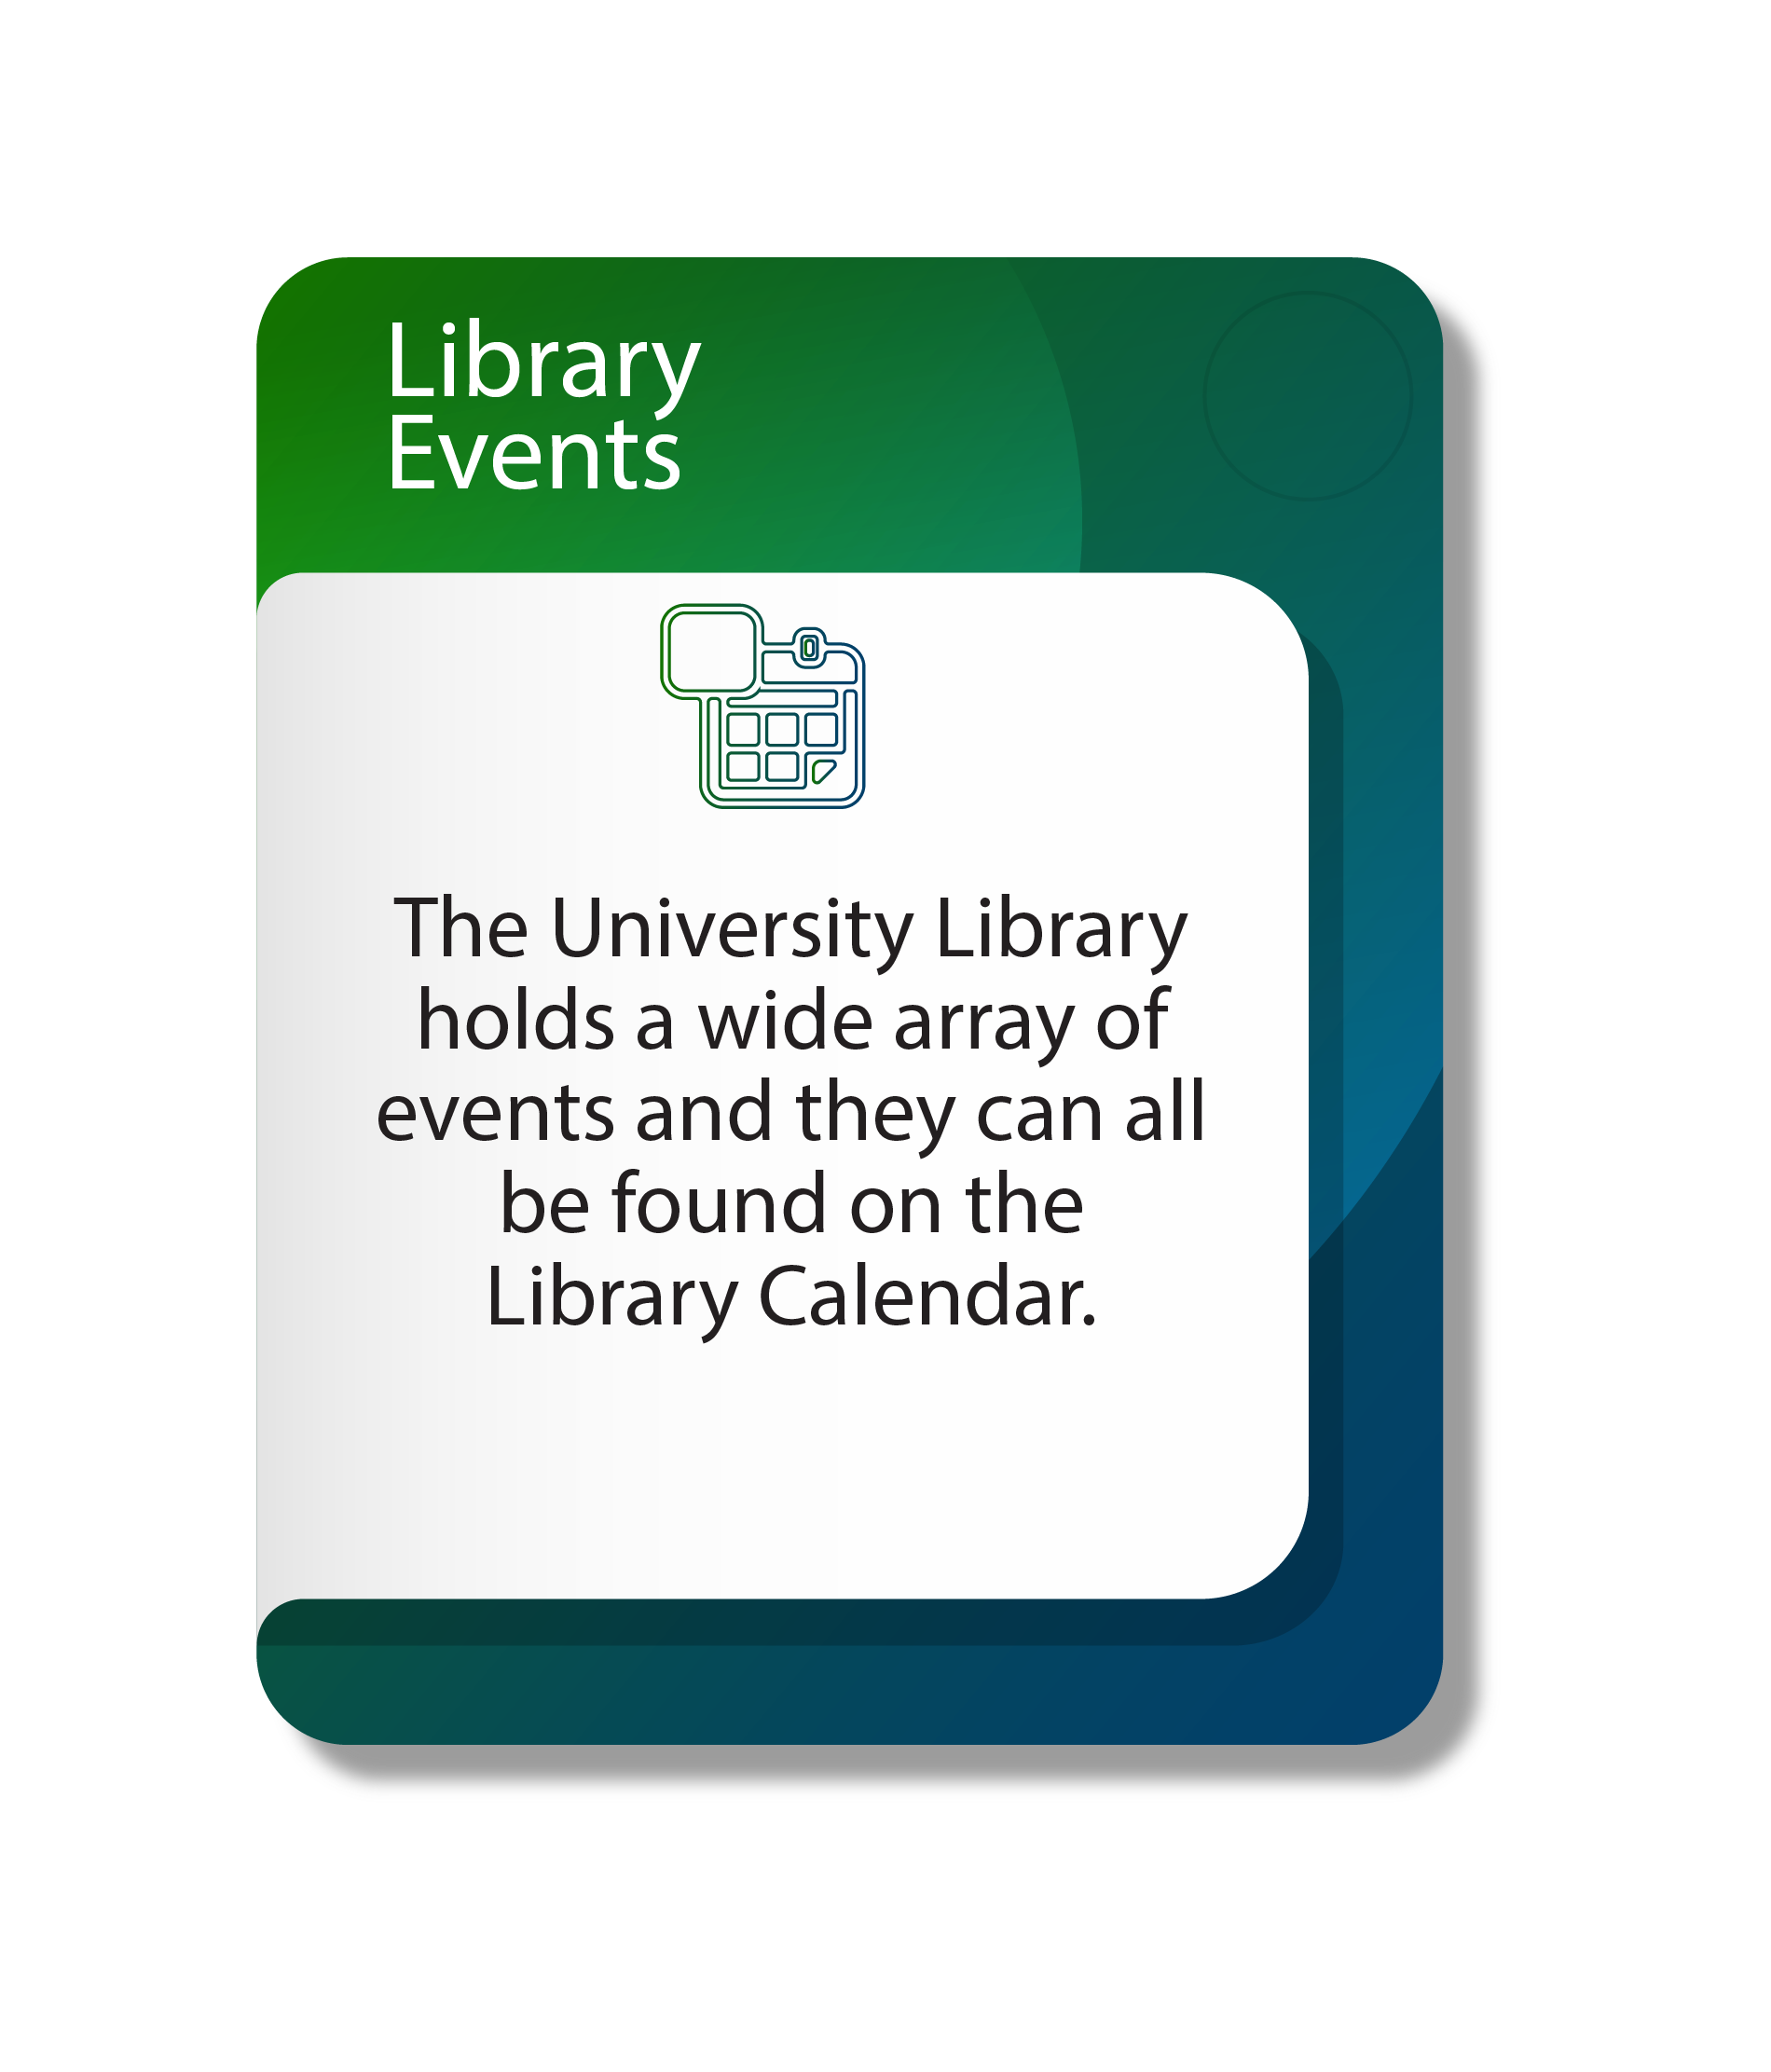 Library Events, the university library holds a wide array of event and they can all be found onnt he library calendar